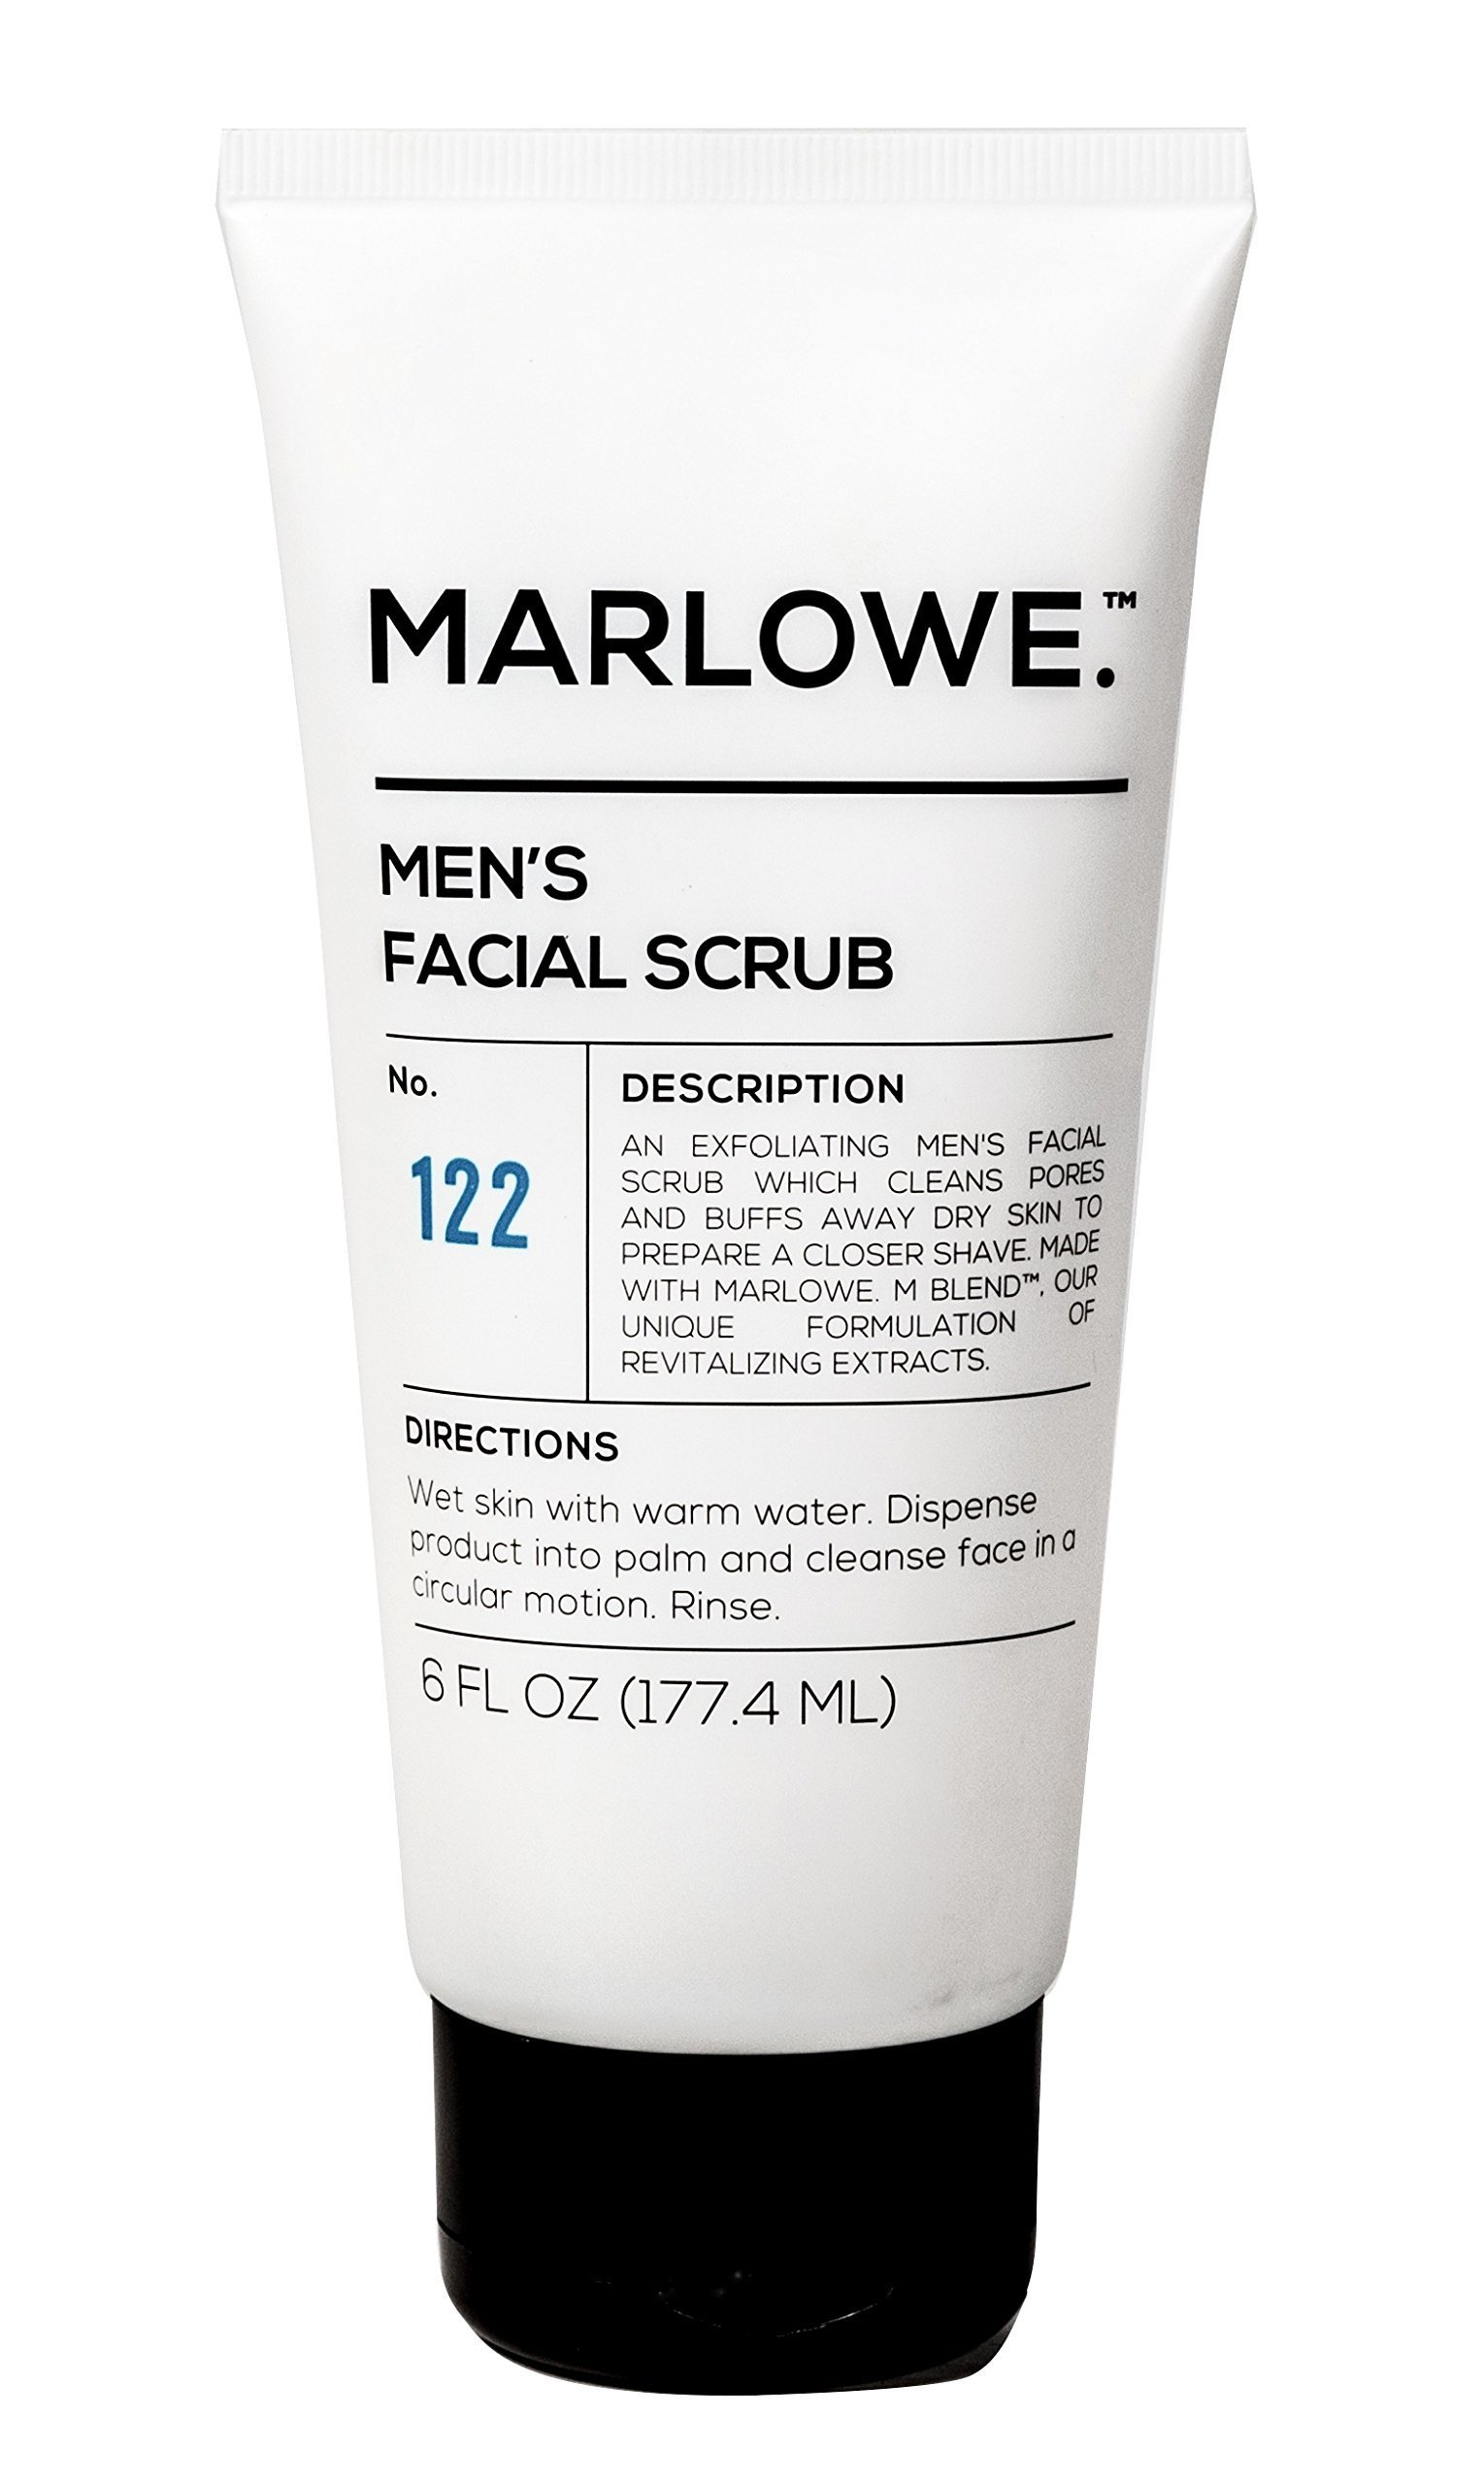 MARLOWE. No. 122 Men's Facial Scrub 6 oz | NEW Improved Formula | Light Daily Exfoliating Face Cleanser | Fresh Sandalwood Scent | Made with Natural Ingredients by MARLOWE. M BLEND